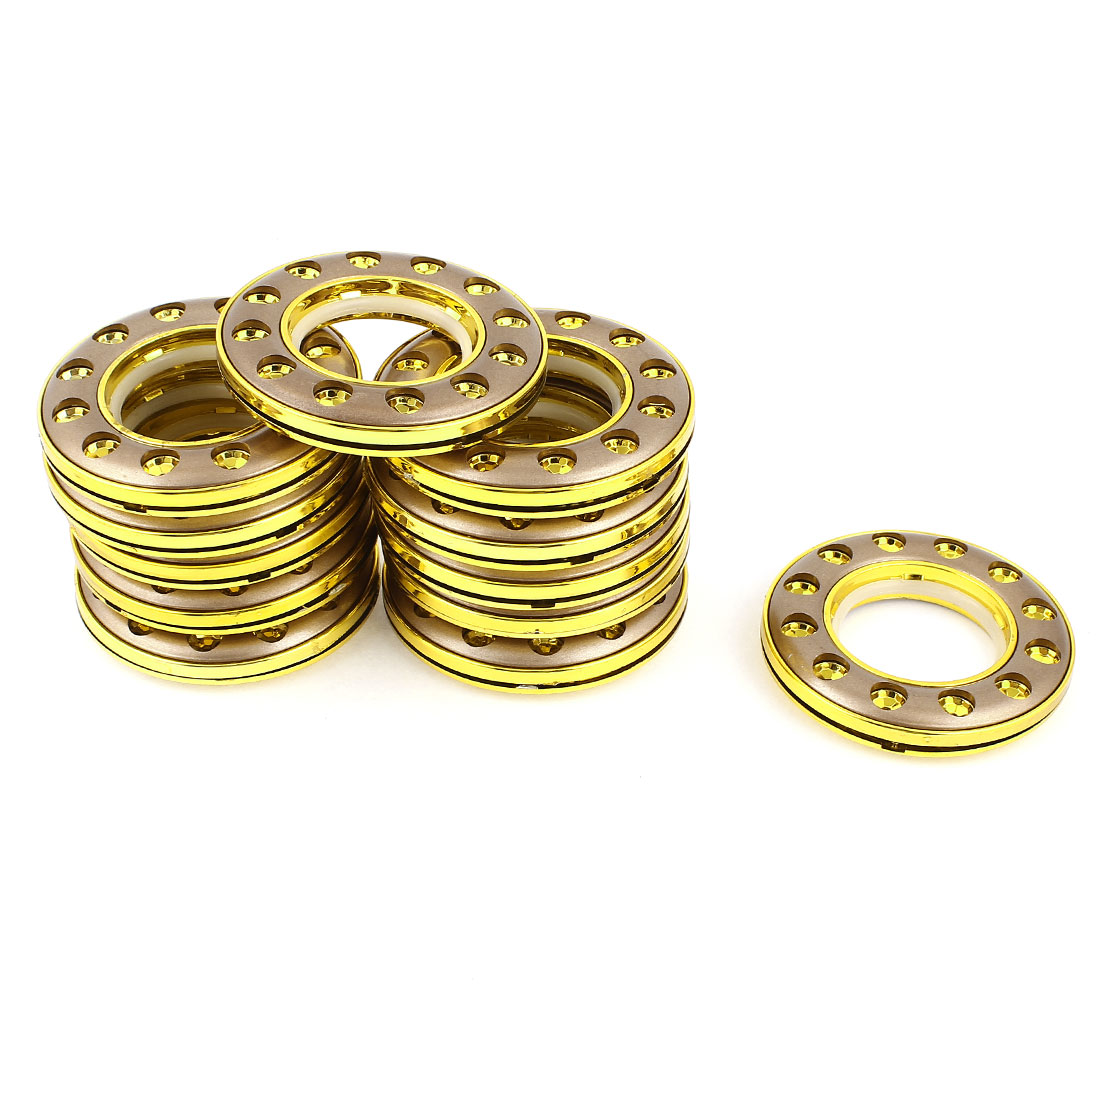 12 Pcs Round Shape 41mm Inside Dia Gold Tone Rings for Eyelet Curtain